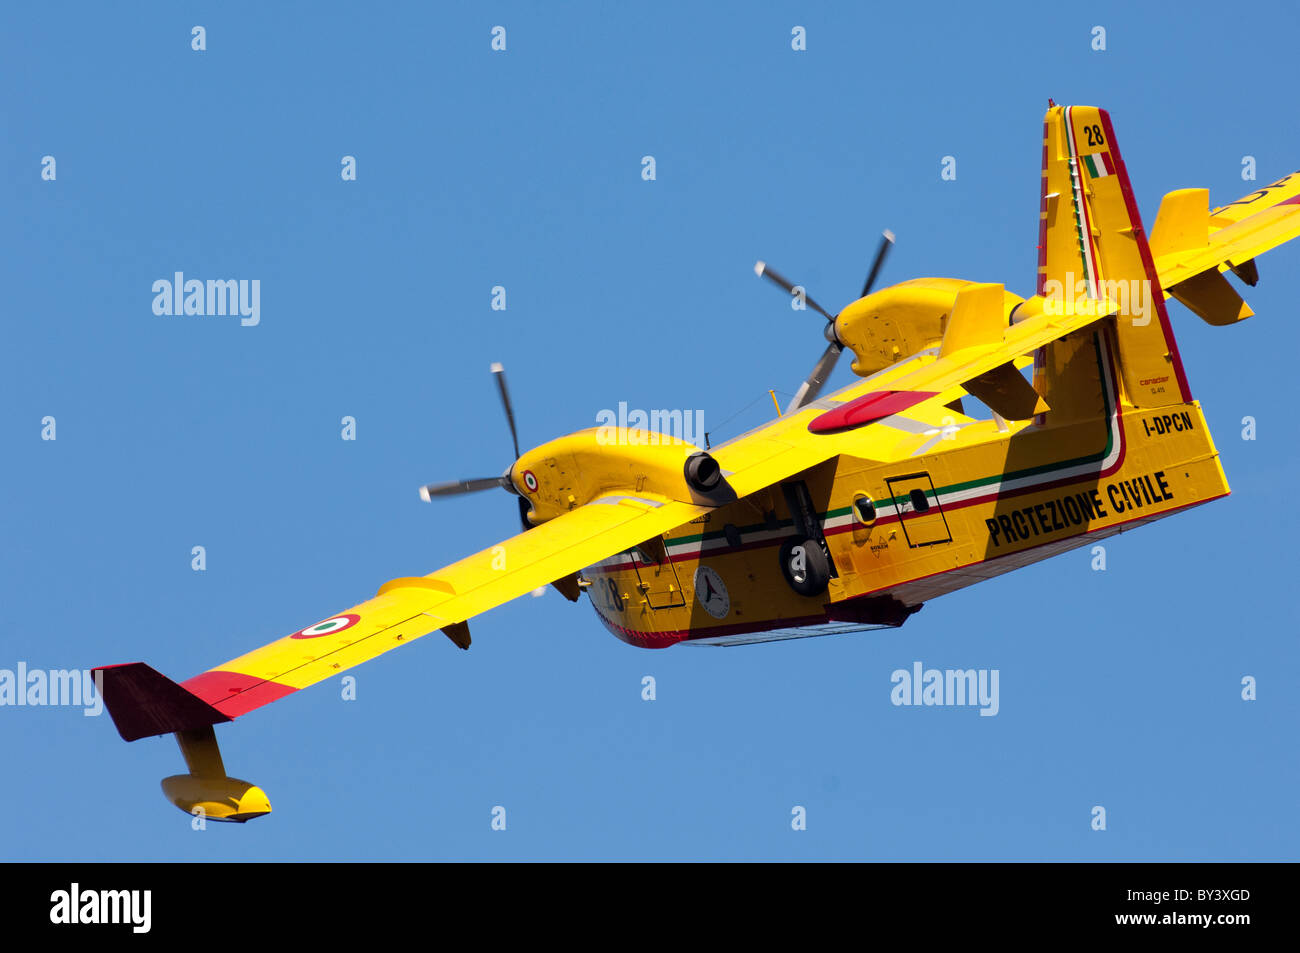 A fire fighting water bomber practices over lake Coghinas in northern Sardinia. - Stock Image